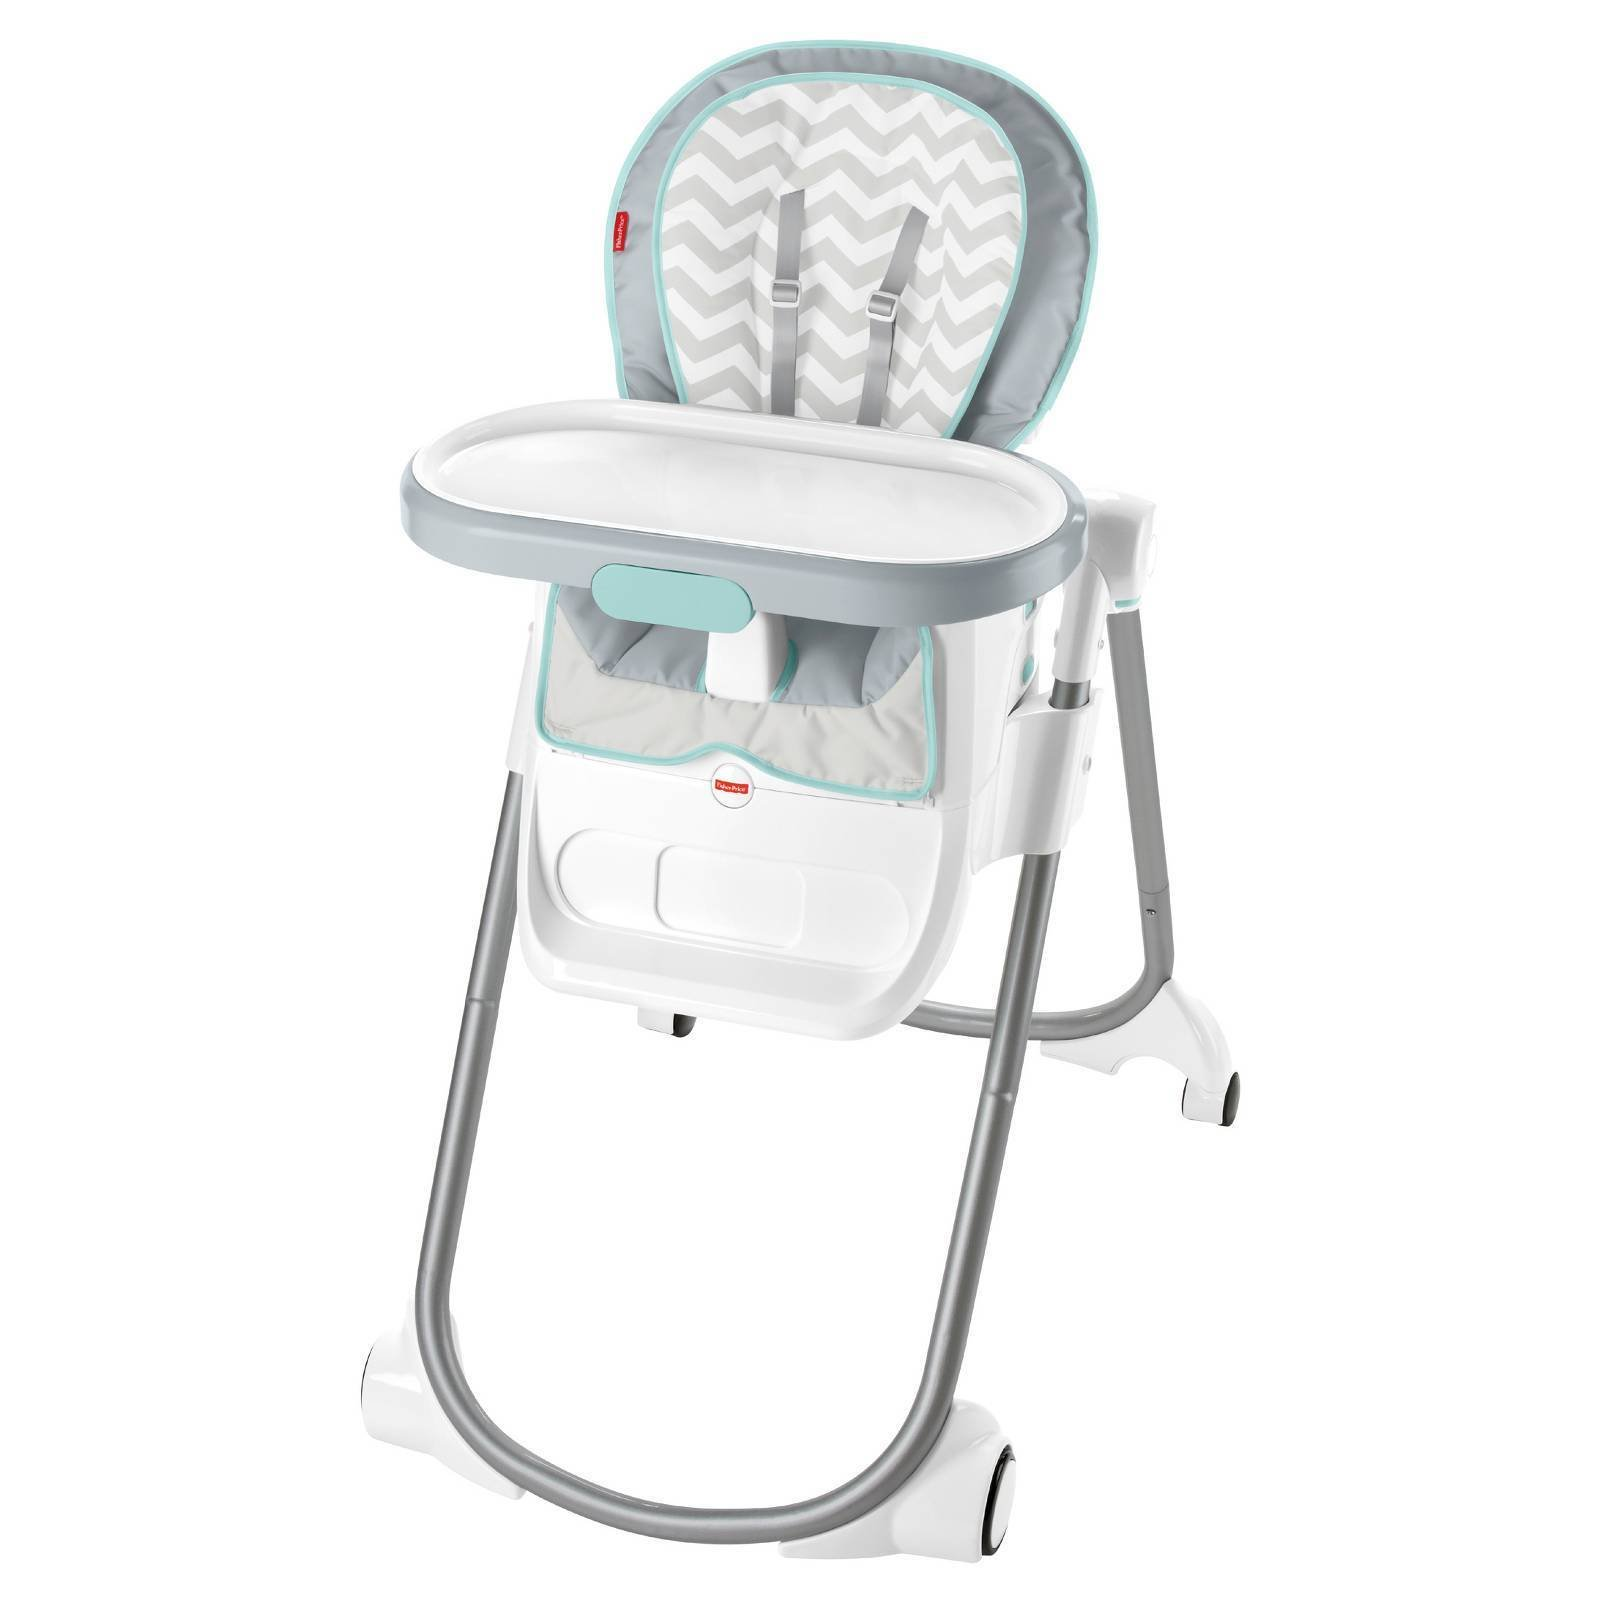 Fisher-Price 4-in-1 Total Clean High Chair Sweet Surroundings